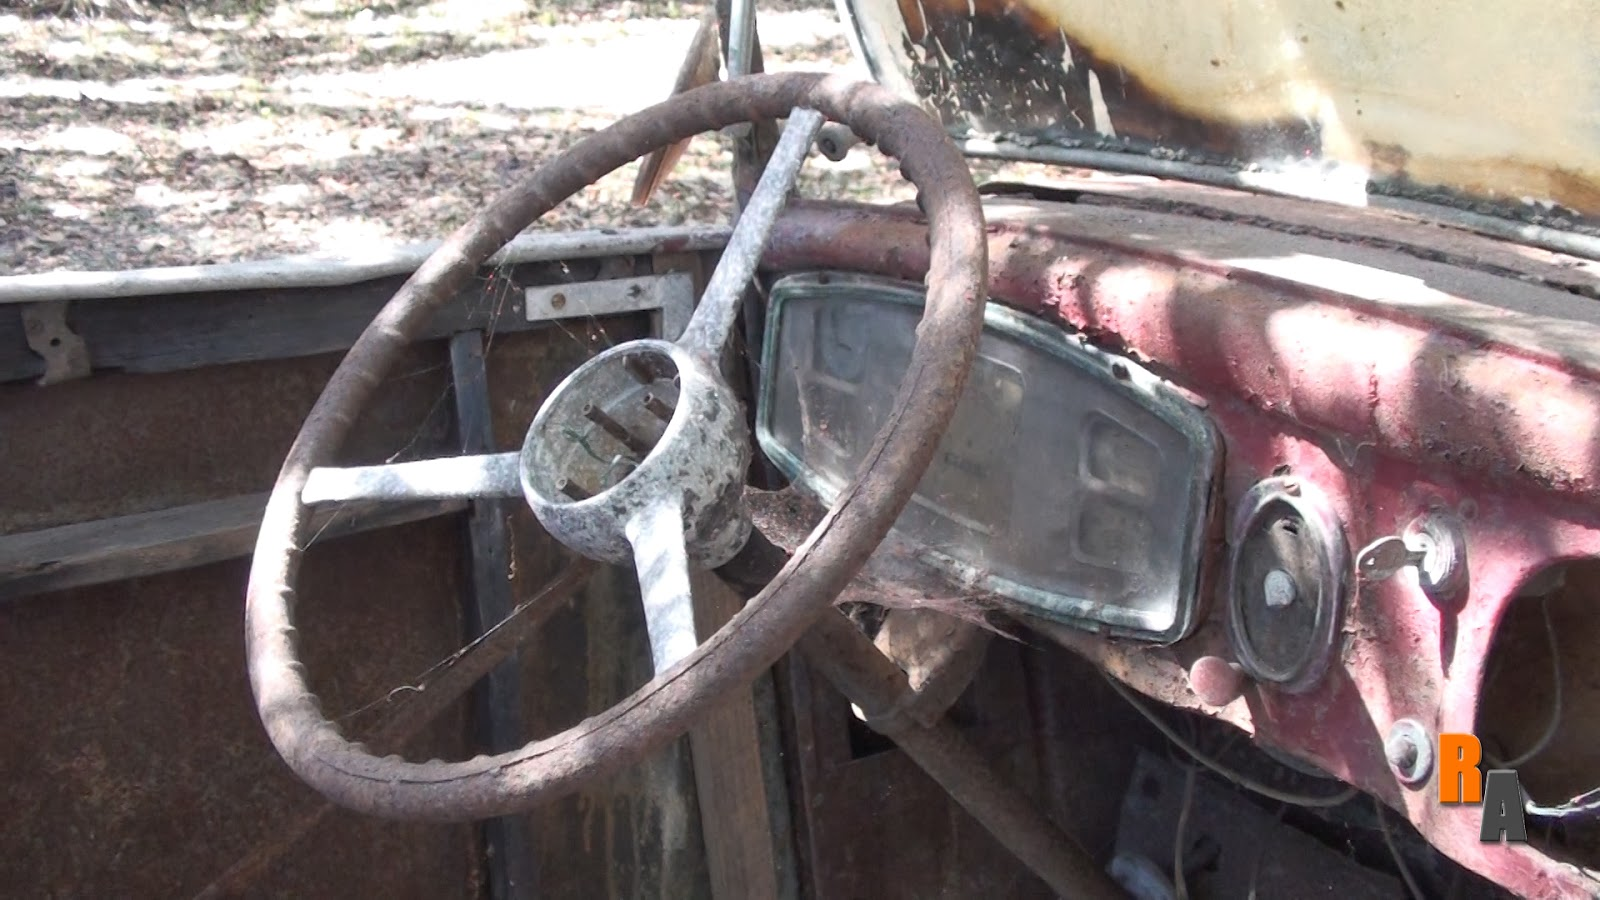 1934 austin 7 central florida abandoned british car